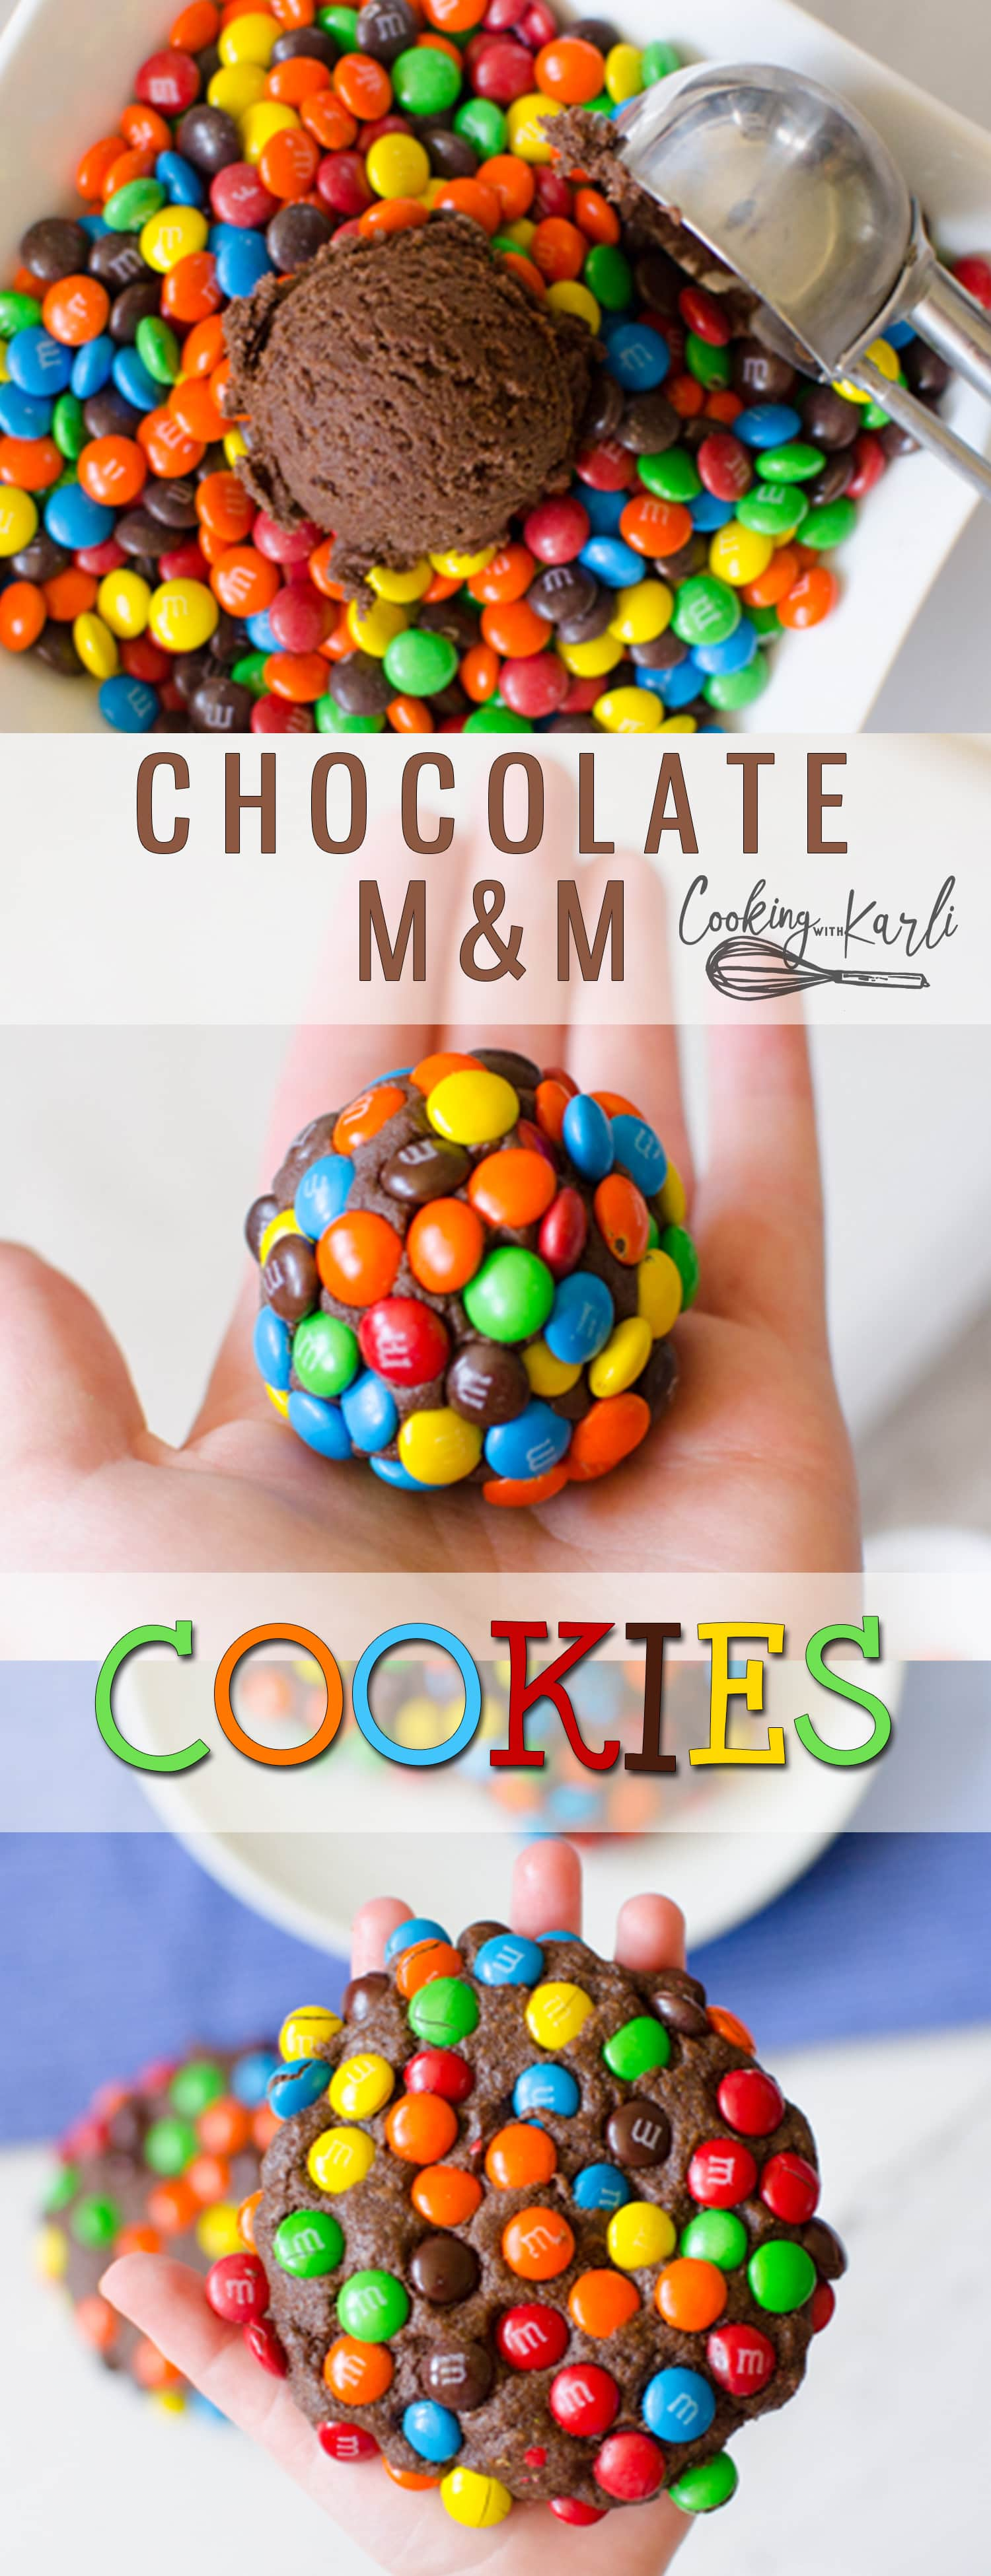 Chocolate M&M Cookies are soft, chewy and are quite literally crusted with mini M&Ms! The rich chocolate cookie dough is scooped and then rolled in mini M&Ms before baking in the oven. Baked to perfection, these final cookie is thick and fudgy. |Cooking with Karli| #cookies #chocolate #m&ms #loaded #recipe